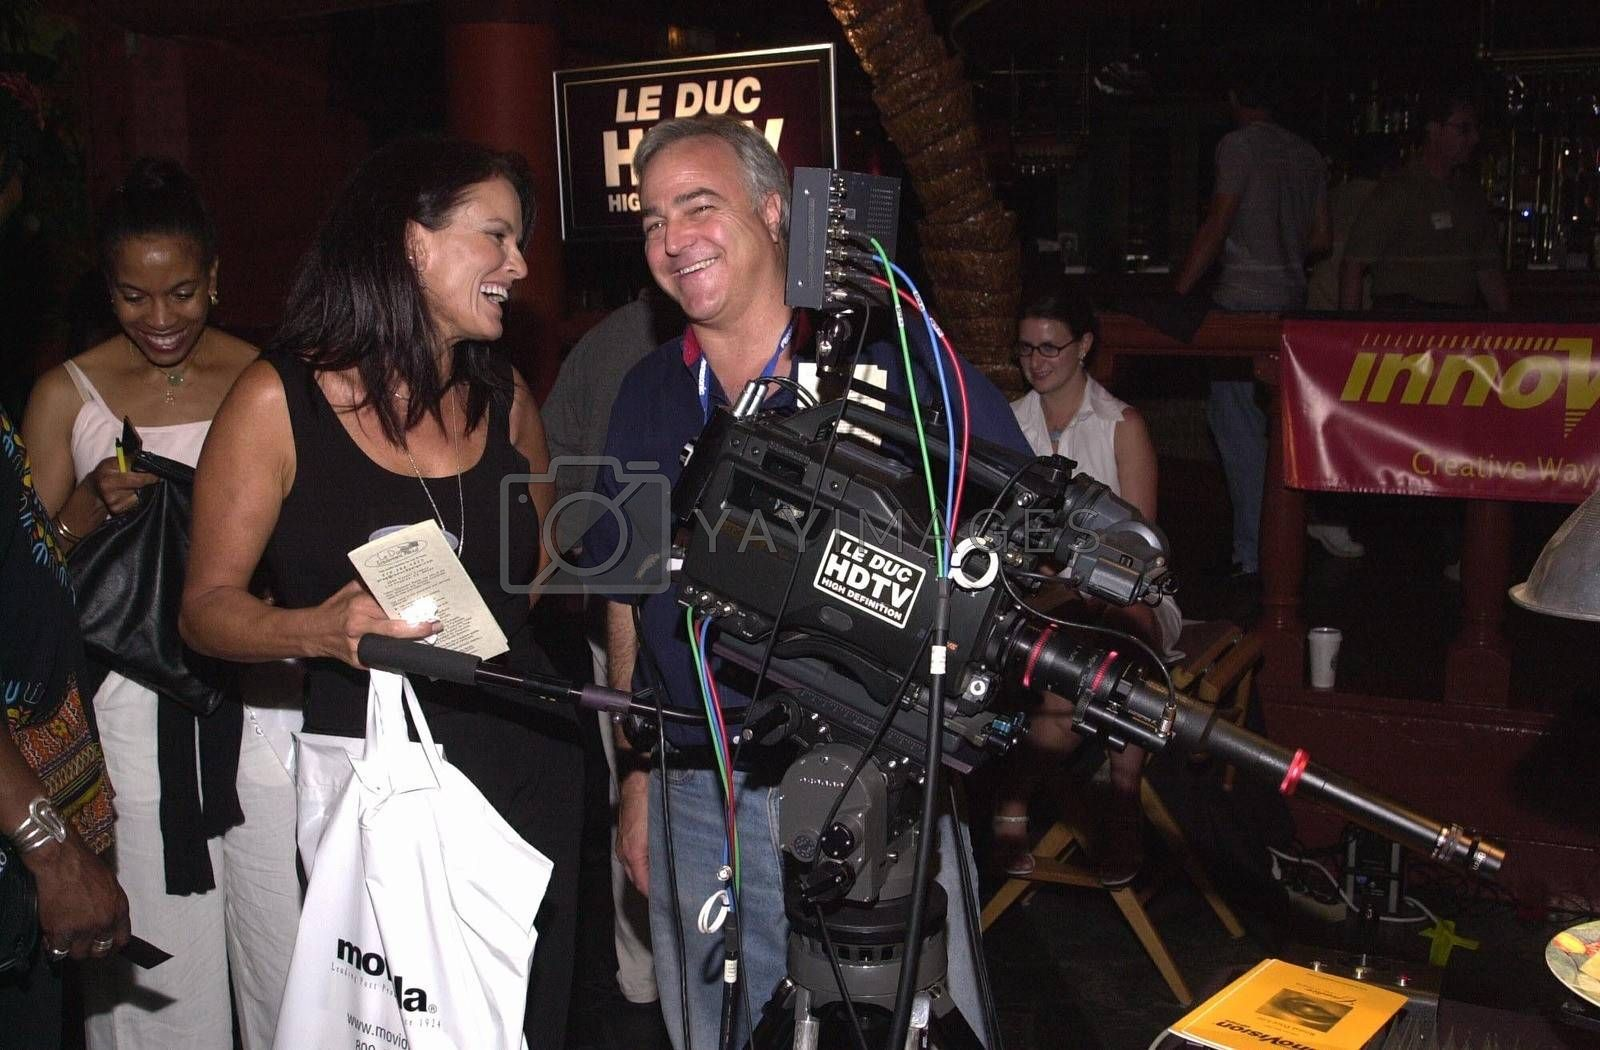 Denise Brown checks out the new High Definition movie cameras at the Moviemaking Technology Showcase, featuring cutting edge movie technology, as well as two fashion shows, The Century Club, Century City, CA, 09-03-02